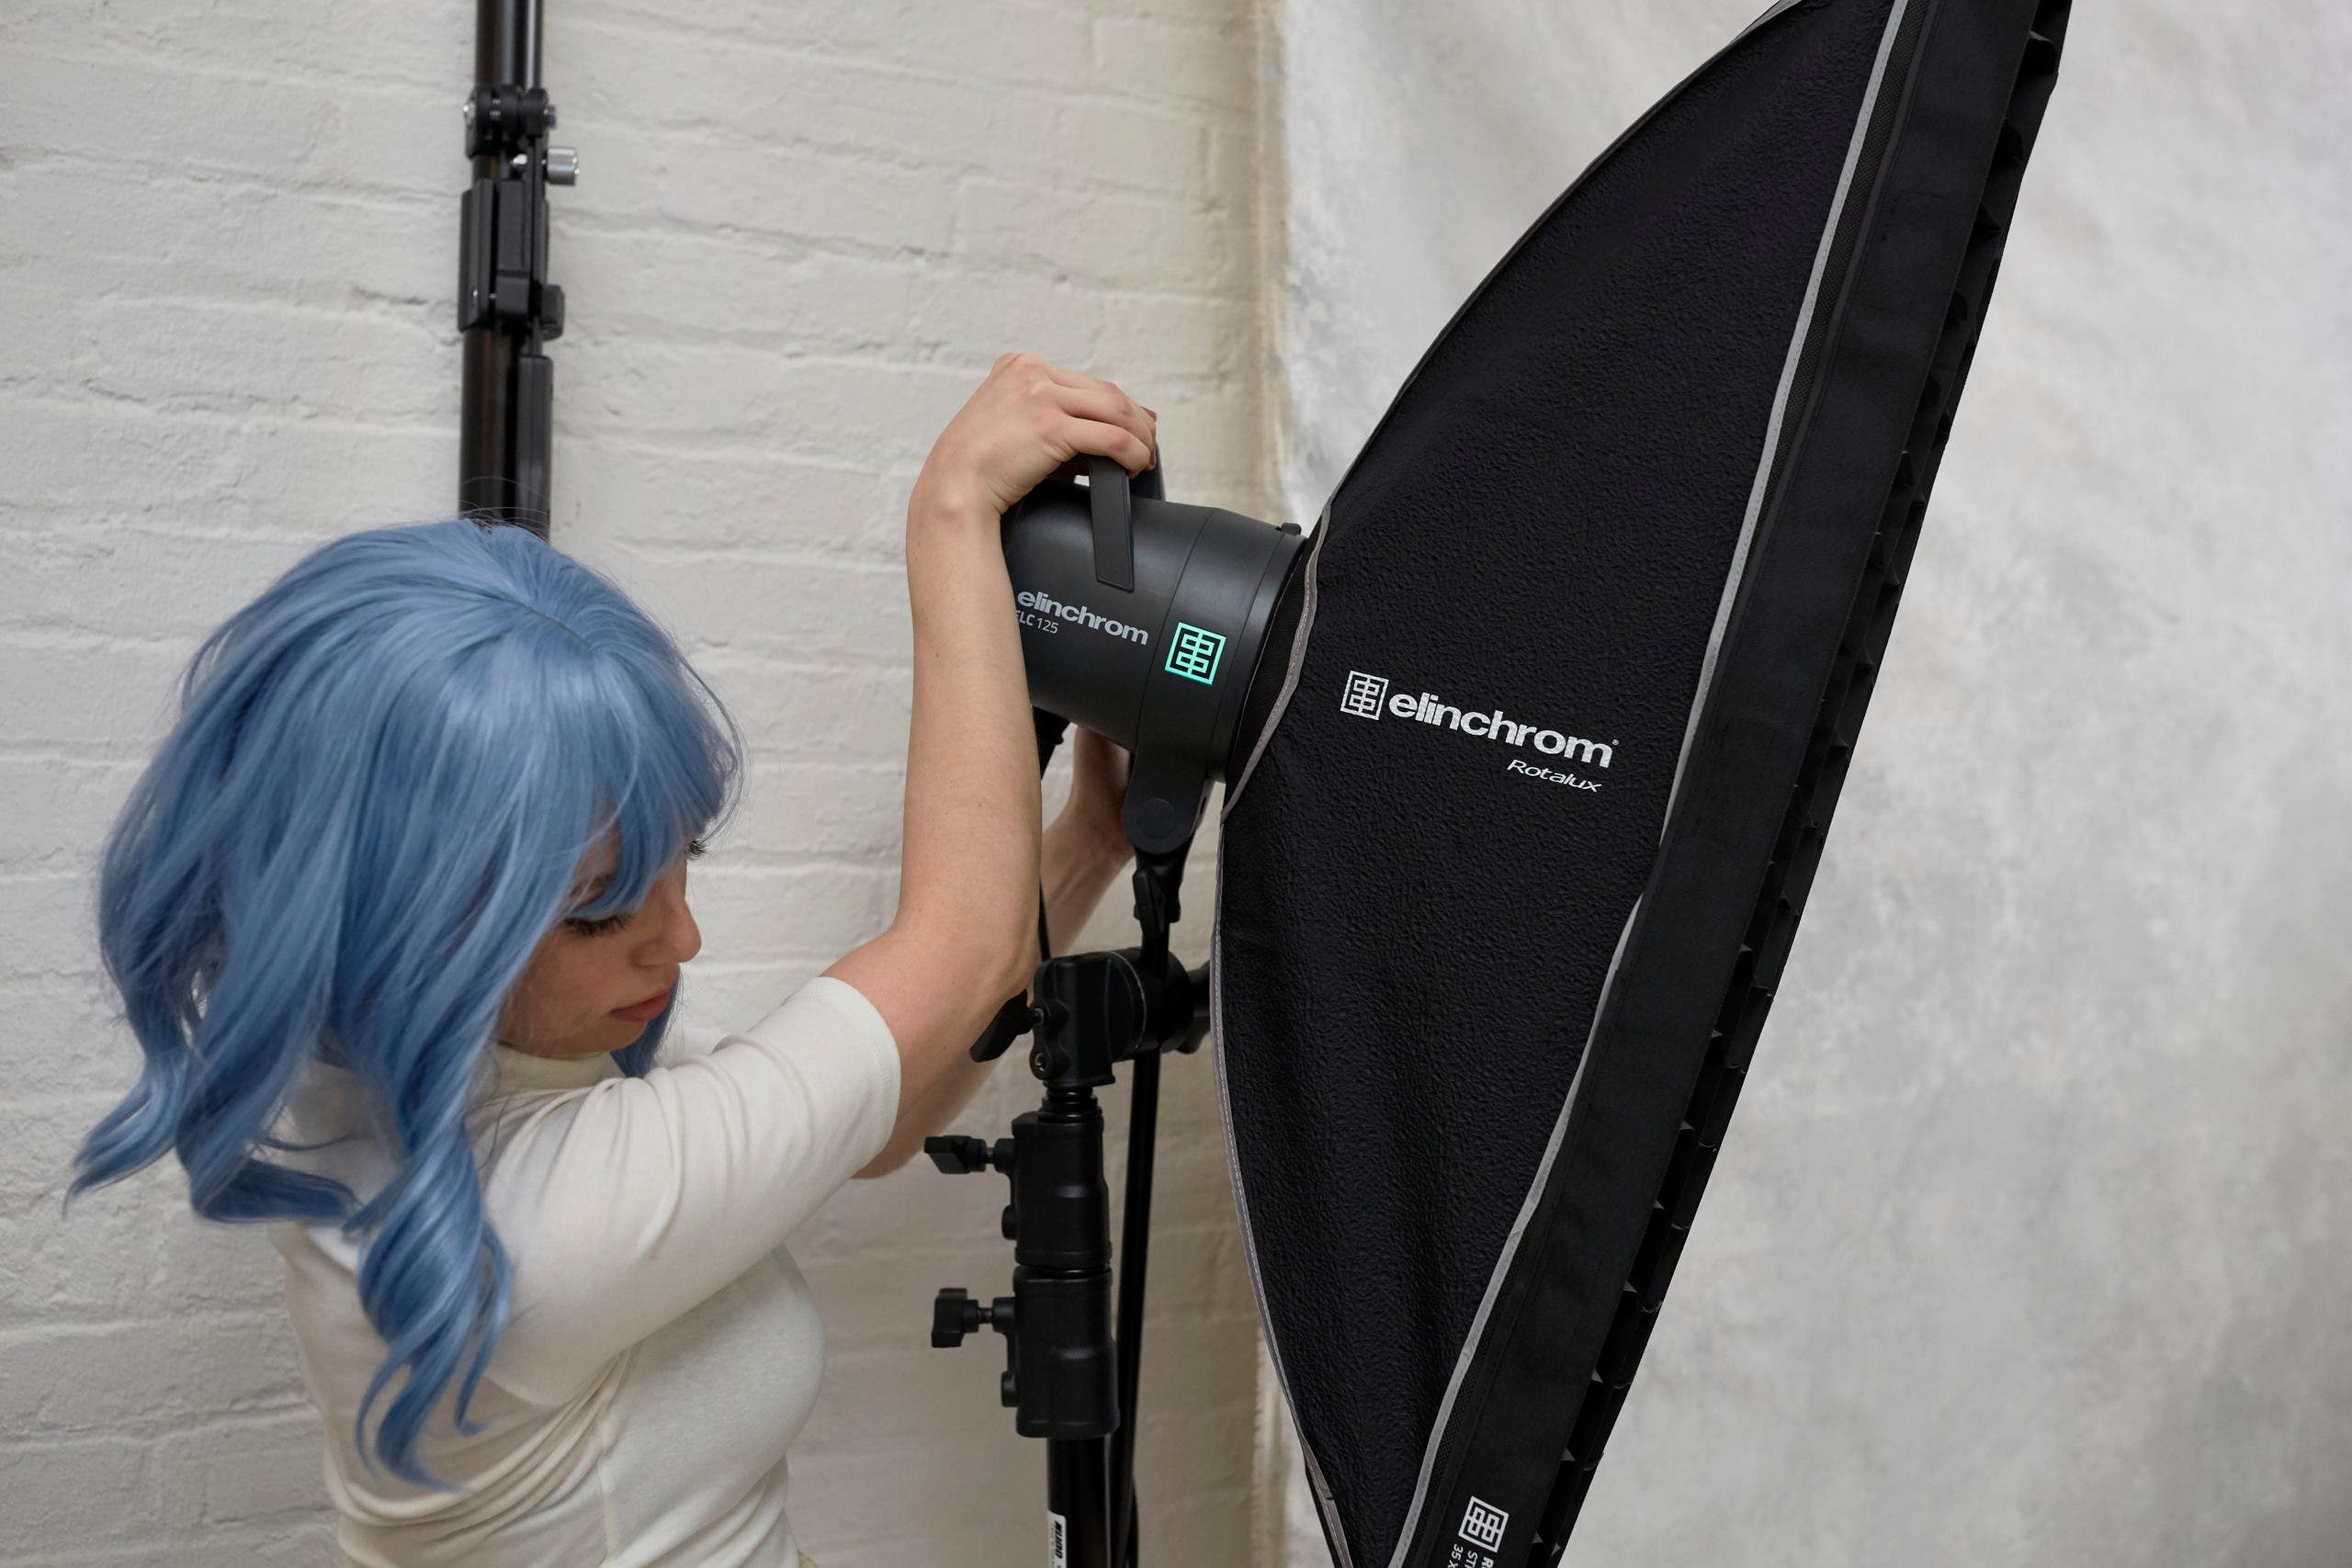 New Elinchrom ELC 125, ELC 500 Studio Flashes are Smart and Affordable